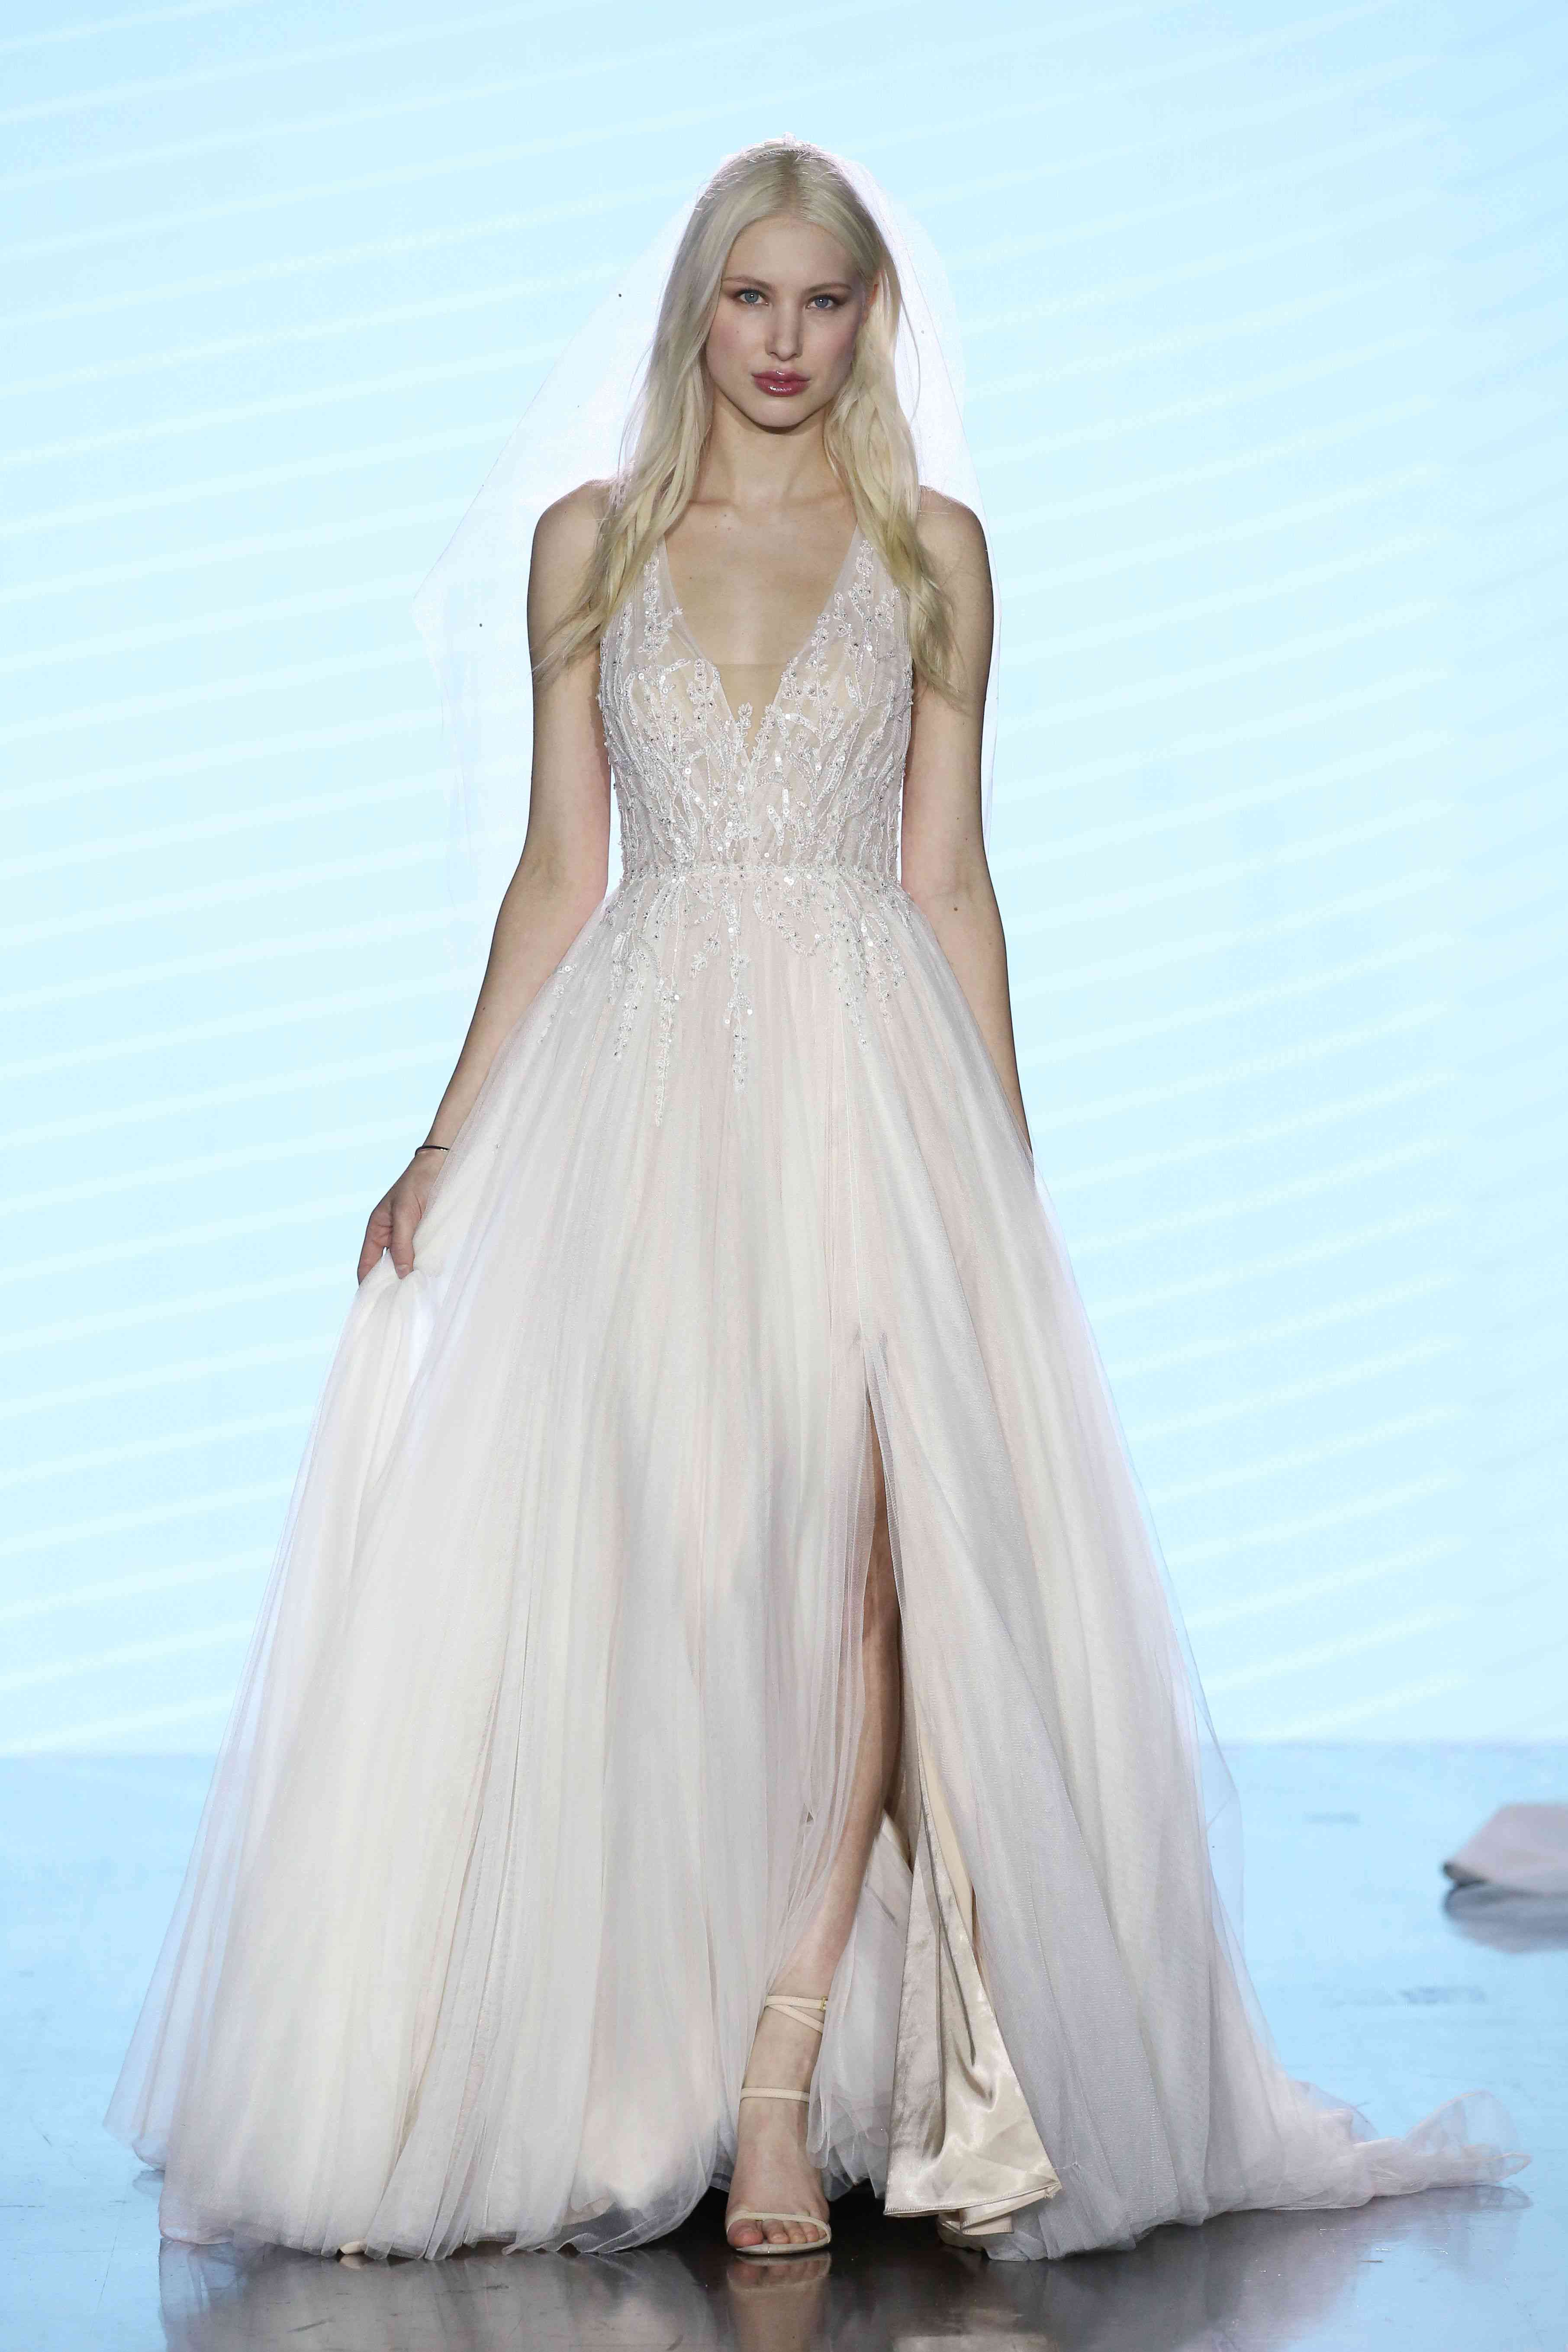 Model on runway in deep V-neck ballgown with a slit tulle skirt and beaded bodice